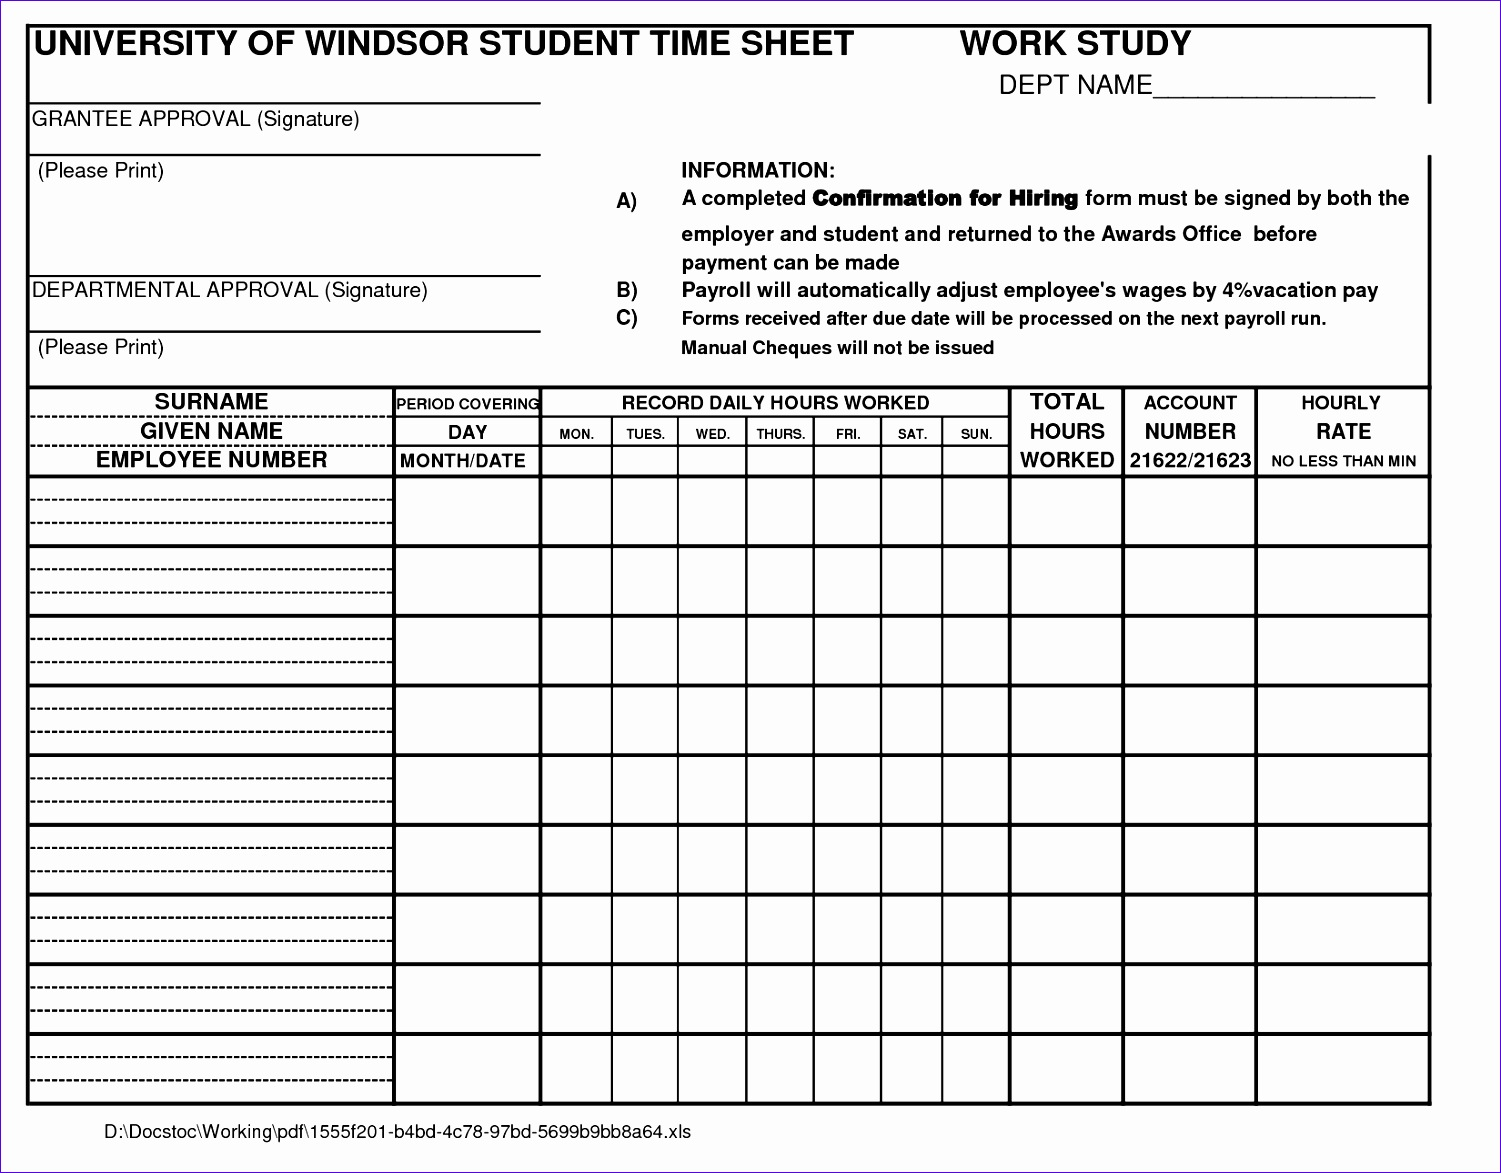 28 Free Time Management Worksheets   Smartsheet also S le Activity Reports Word Pages Google Doc Ex les Daily moreover Motion Templates Free   Ivoiregion as well How to Do a Time and Motion Study to Make Real Change additionally Time Study Template Free Time Management Worksheets Time Study moreover Time and Motion Study Template   YouTube also Time Study Templates Excel Awesome Receipt Template Free Printable moreover Time Study Templates Excel Beautiful Time Study Worksheet Excel New as well  also Time In Motion Study Template Best Of Time and Motion Study Template furthermore  besides Time Study Worksheet   Oaklandeffect furthermore Detailed and or Simple Time Study Worksheet – time study form – likewise Index of  cdn 10 2016 561 further How to Do a Time and Motion Study to Make Real Change furthermore time study worksheet excel   Koran sticken co. on time and motion study worksheet